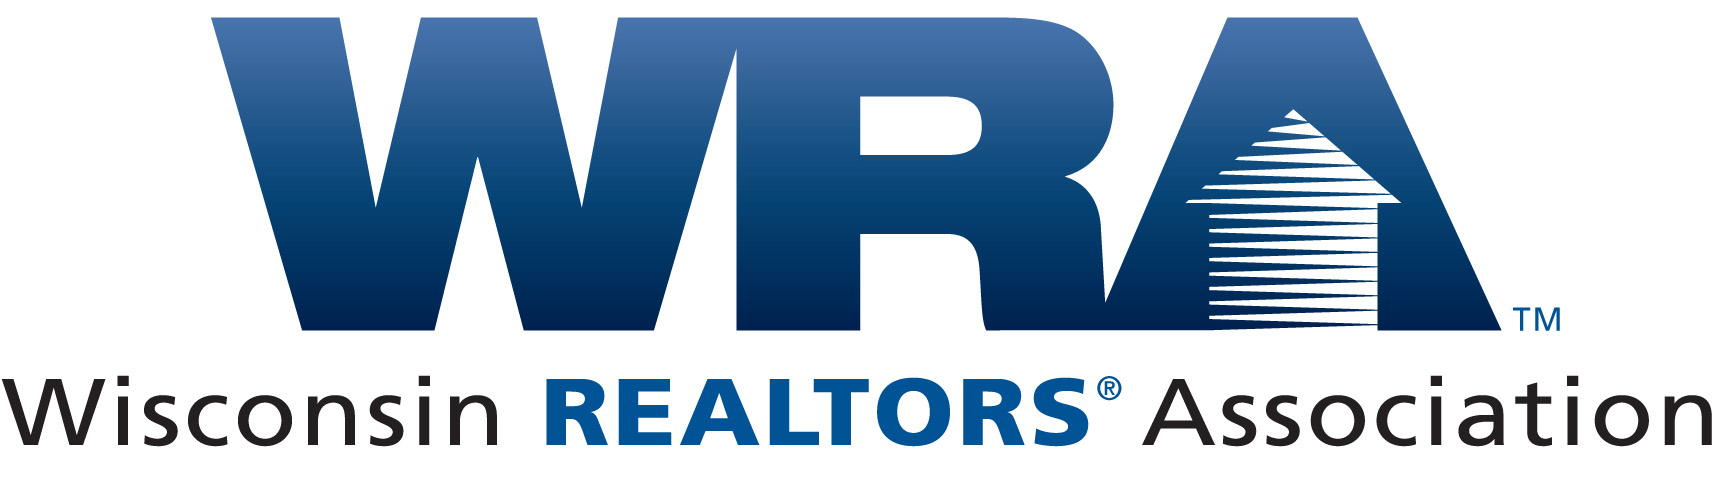 Wisconsin REALTORS® Association is Disappointed by Wisconsin Supreme Court Decision in Shoreland Zoning Case